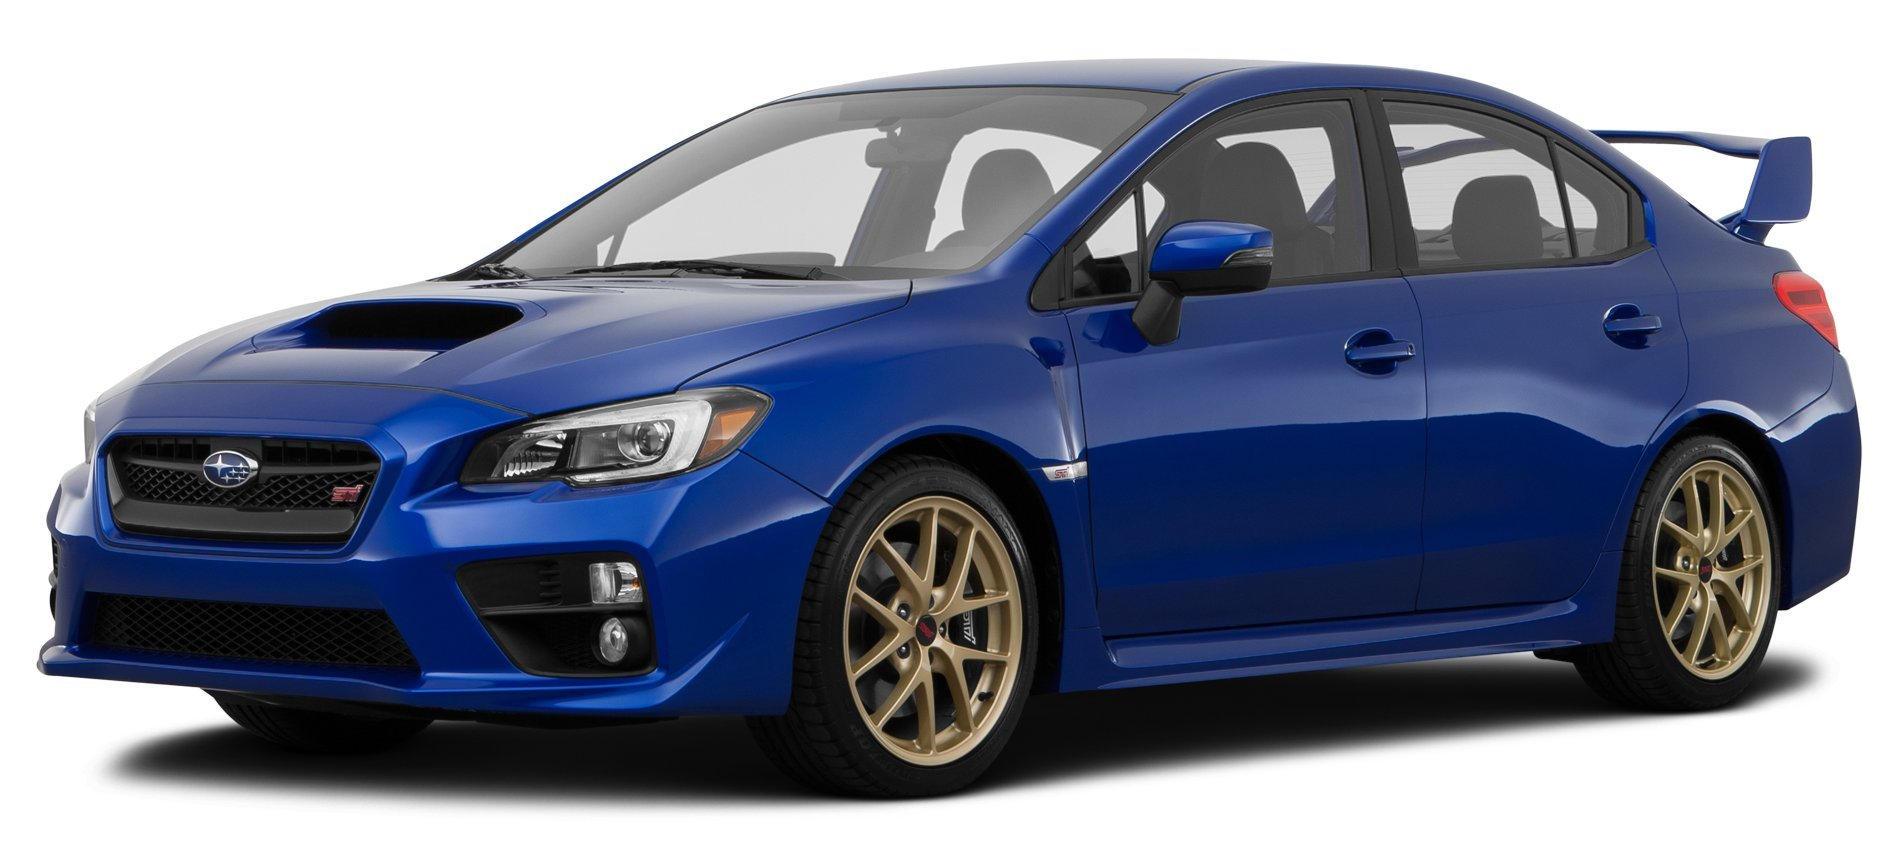 2015 subaru wrx sti reviews images and specs vehicles. Black Bedroom Furniture Sets. Home Design Ideas